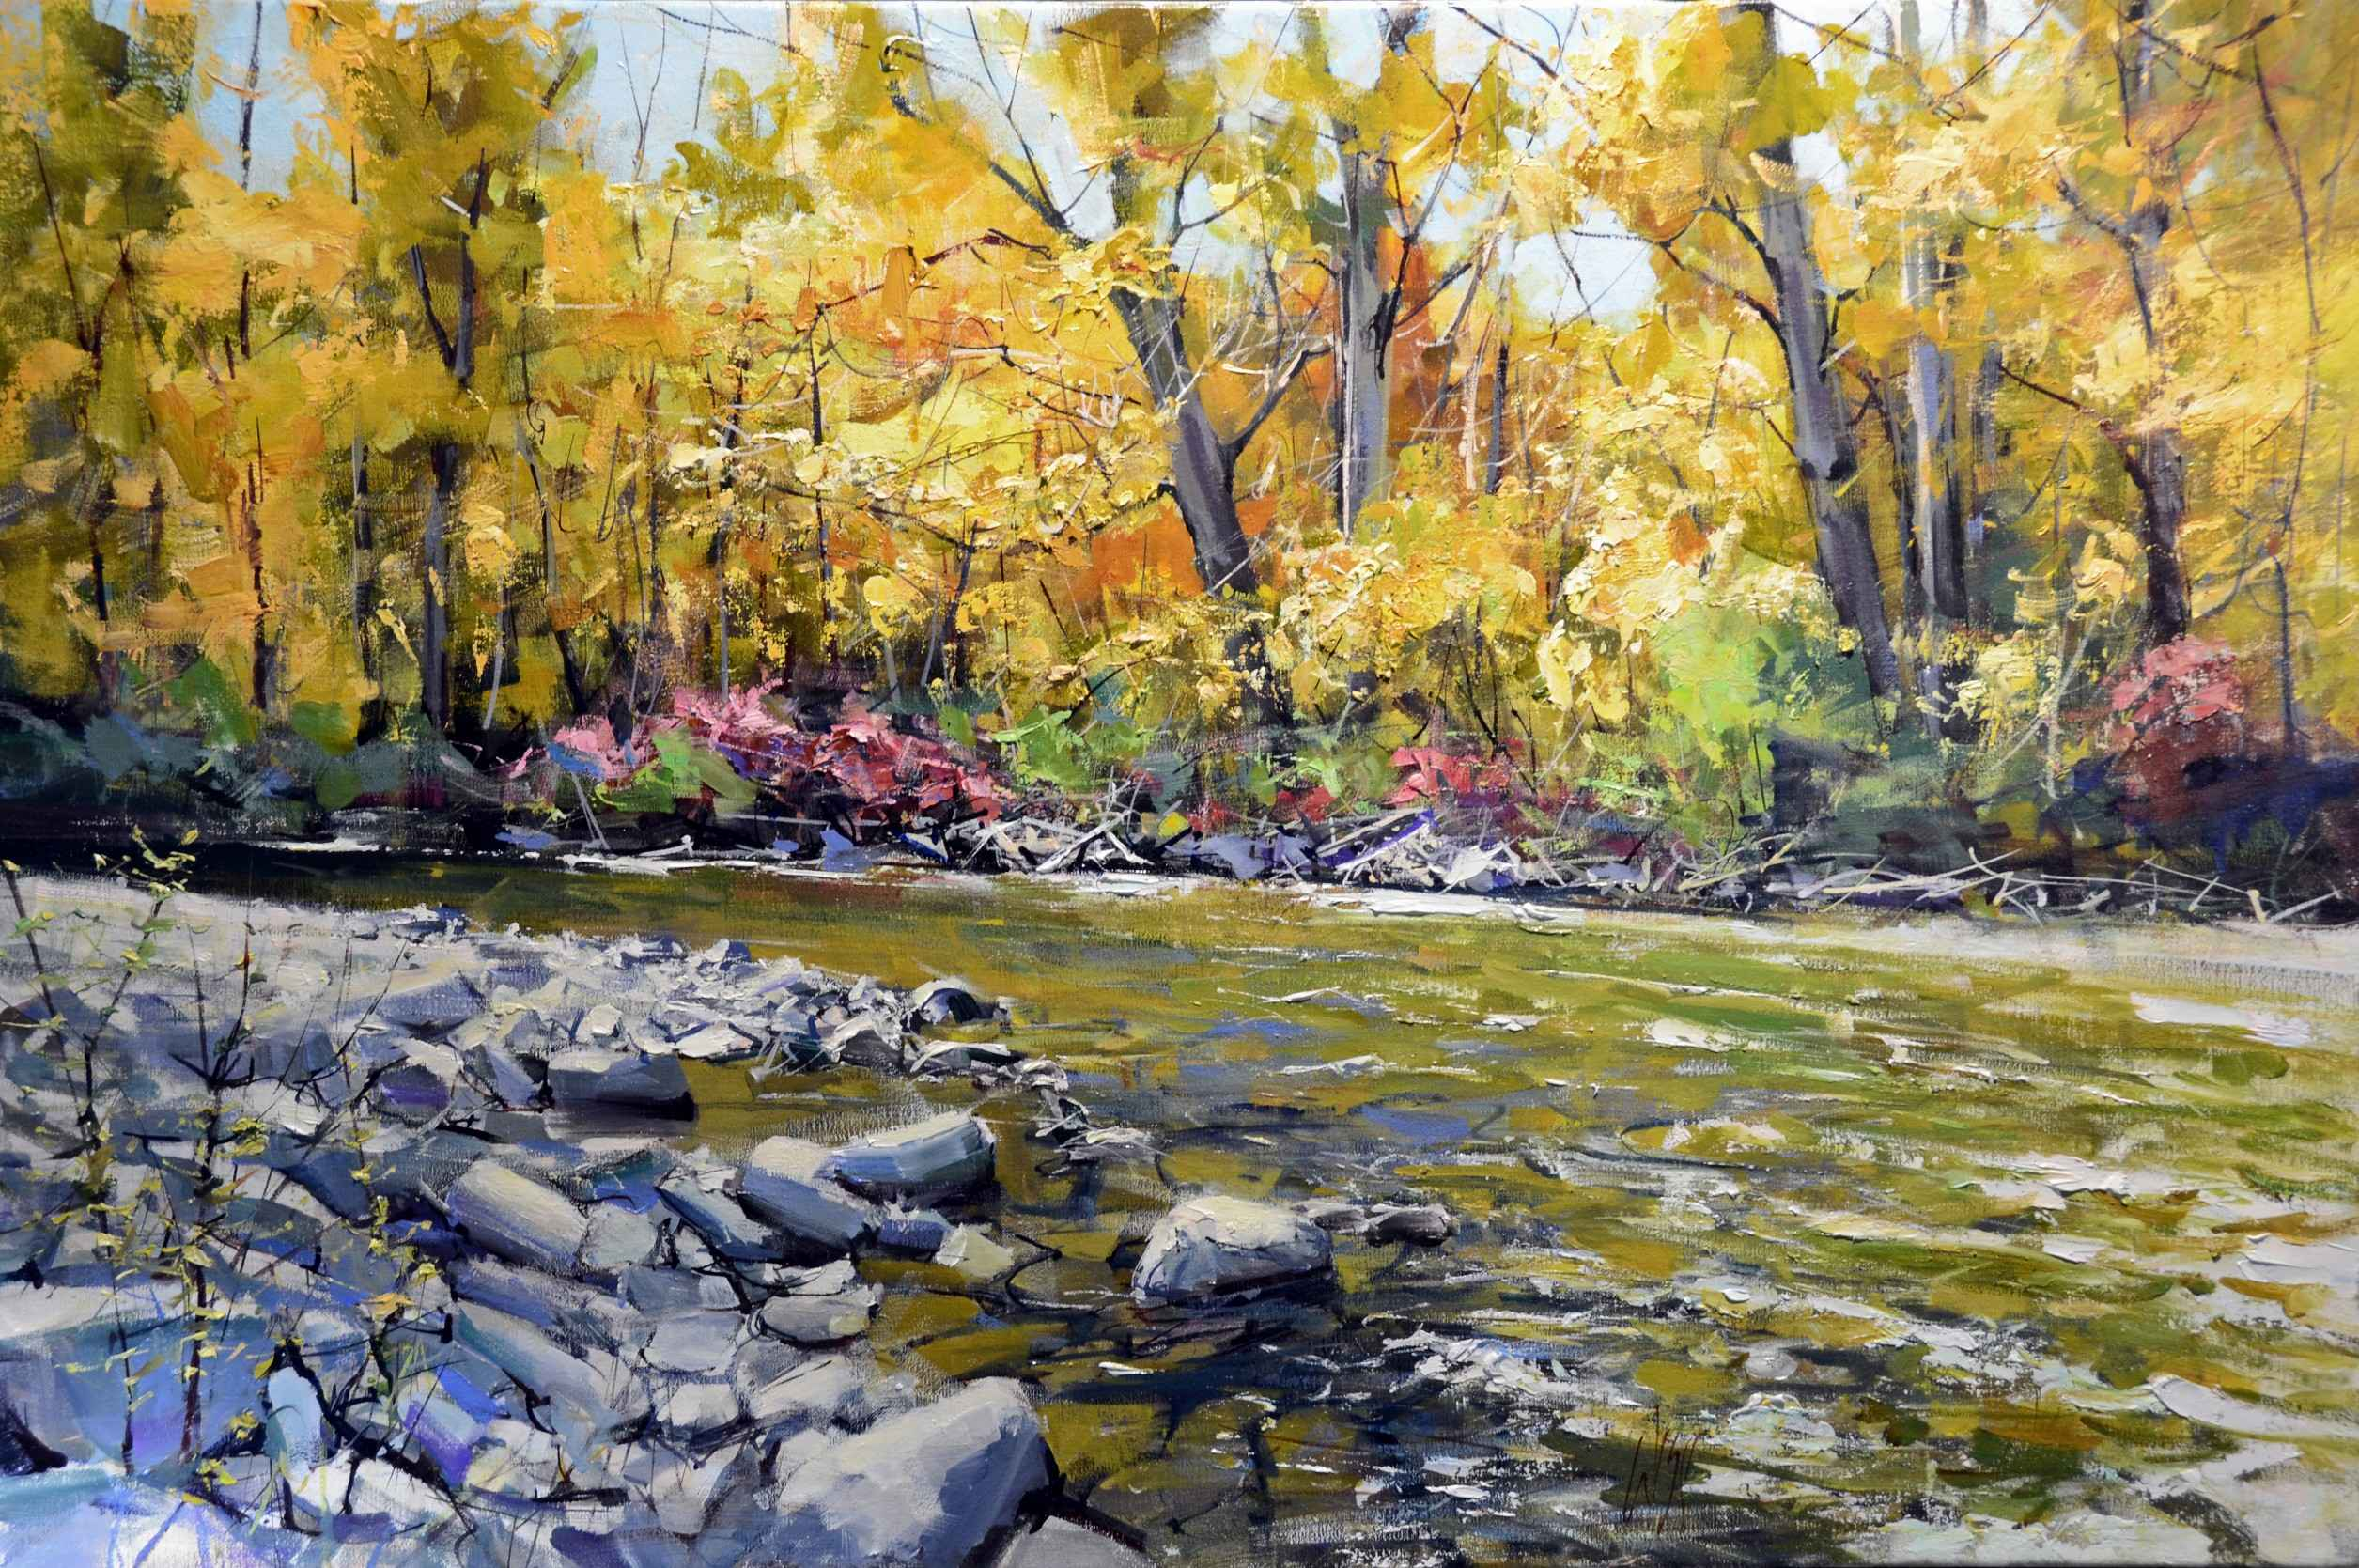 Rio Chama by  Mike Wise - Masterpiece Online